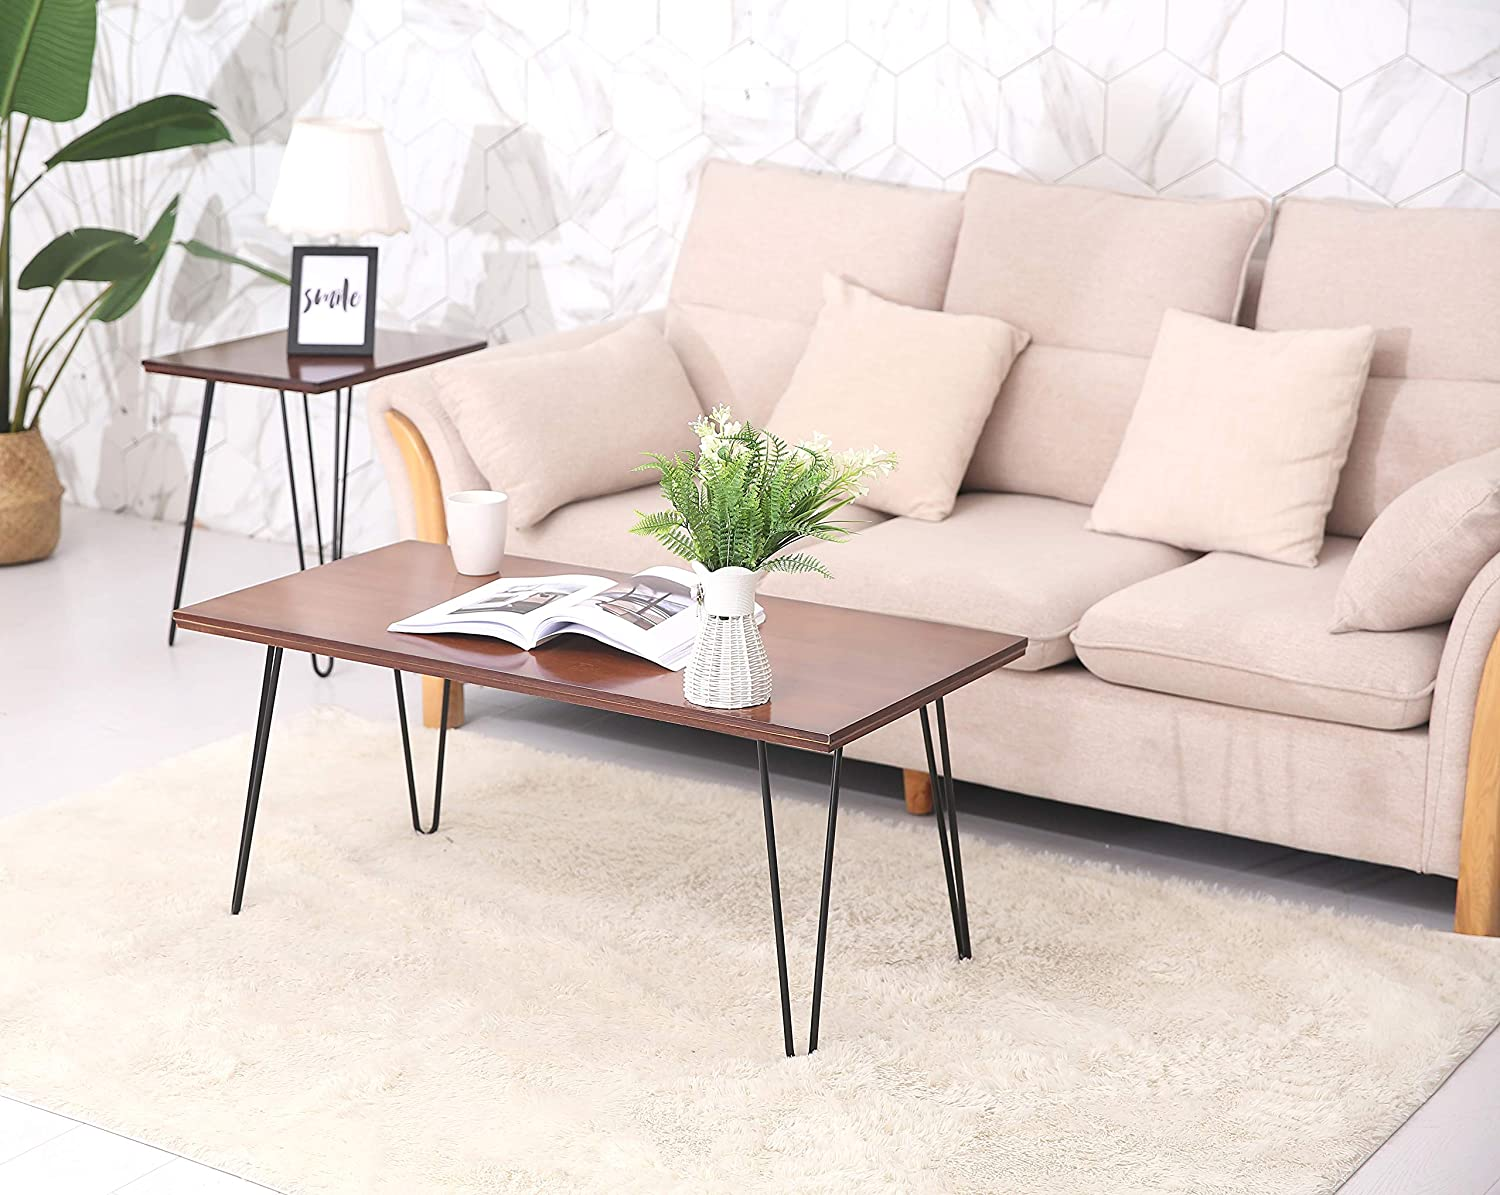 UNICOO Hairpin Wood and Metal End Table, Hairpin Coffee Table, Hairpin End Table, Sofa Side Table for Living Room, Solid Wooden Table Top with Metal Legs End Table